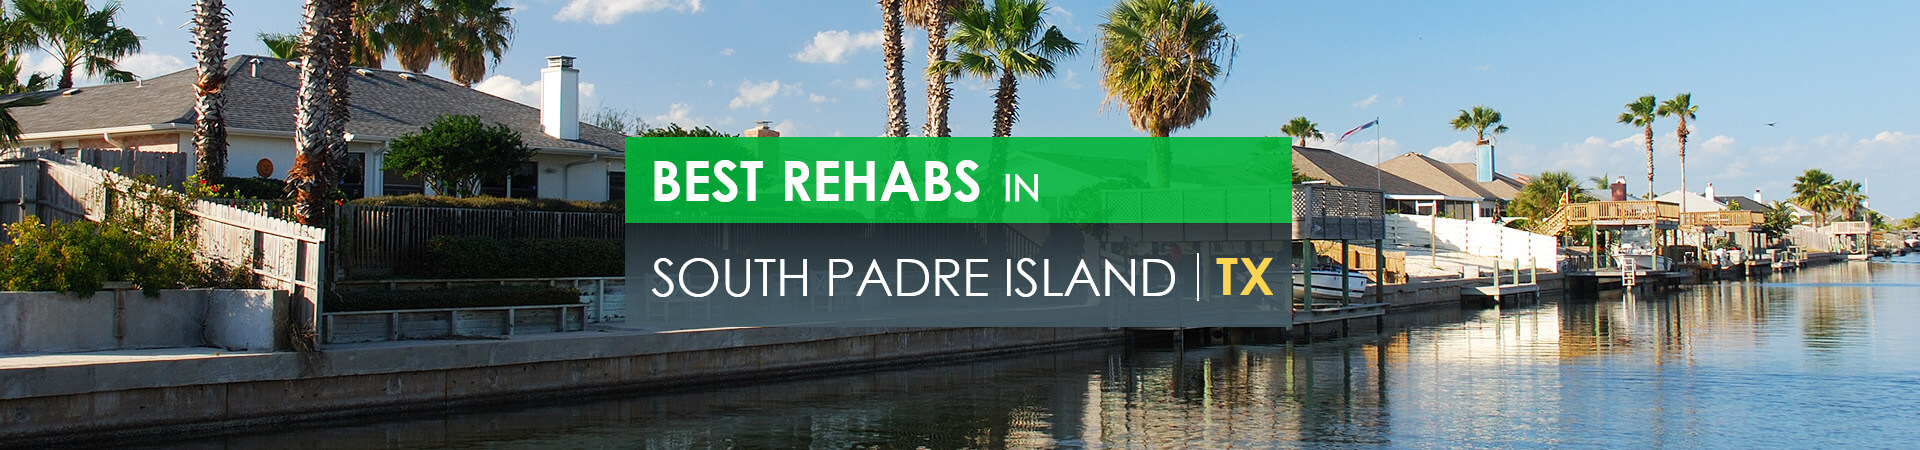 Best rehabs in South Padre Island, TX